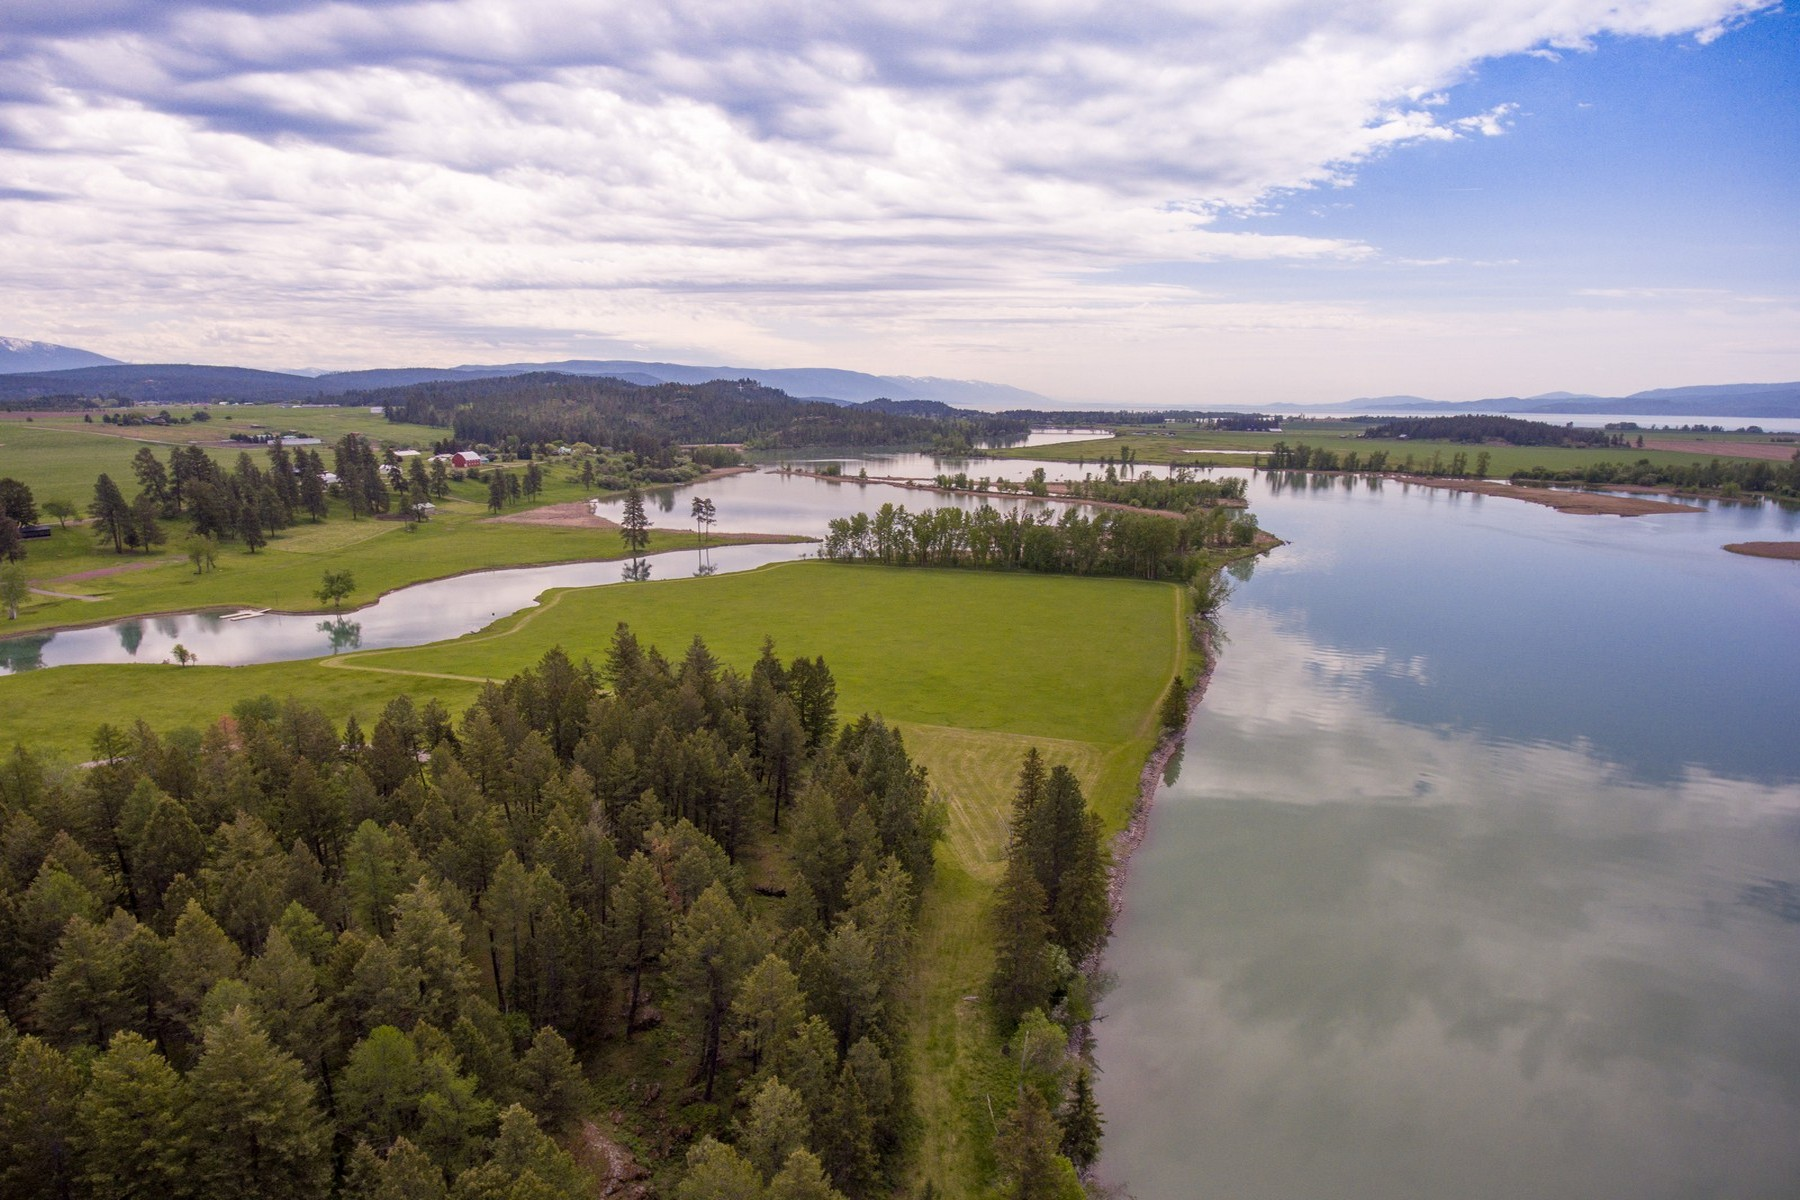 Land for Sale at 700 Ramsfield Rd , Bigfork, MT 59911 700 Ramsfield Rd Bigfork, Montana 59911 United States